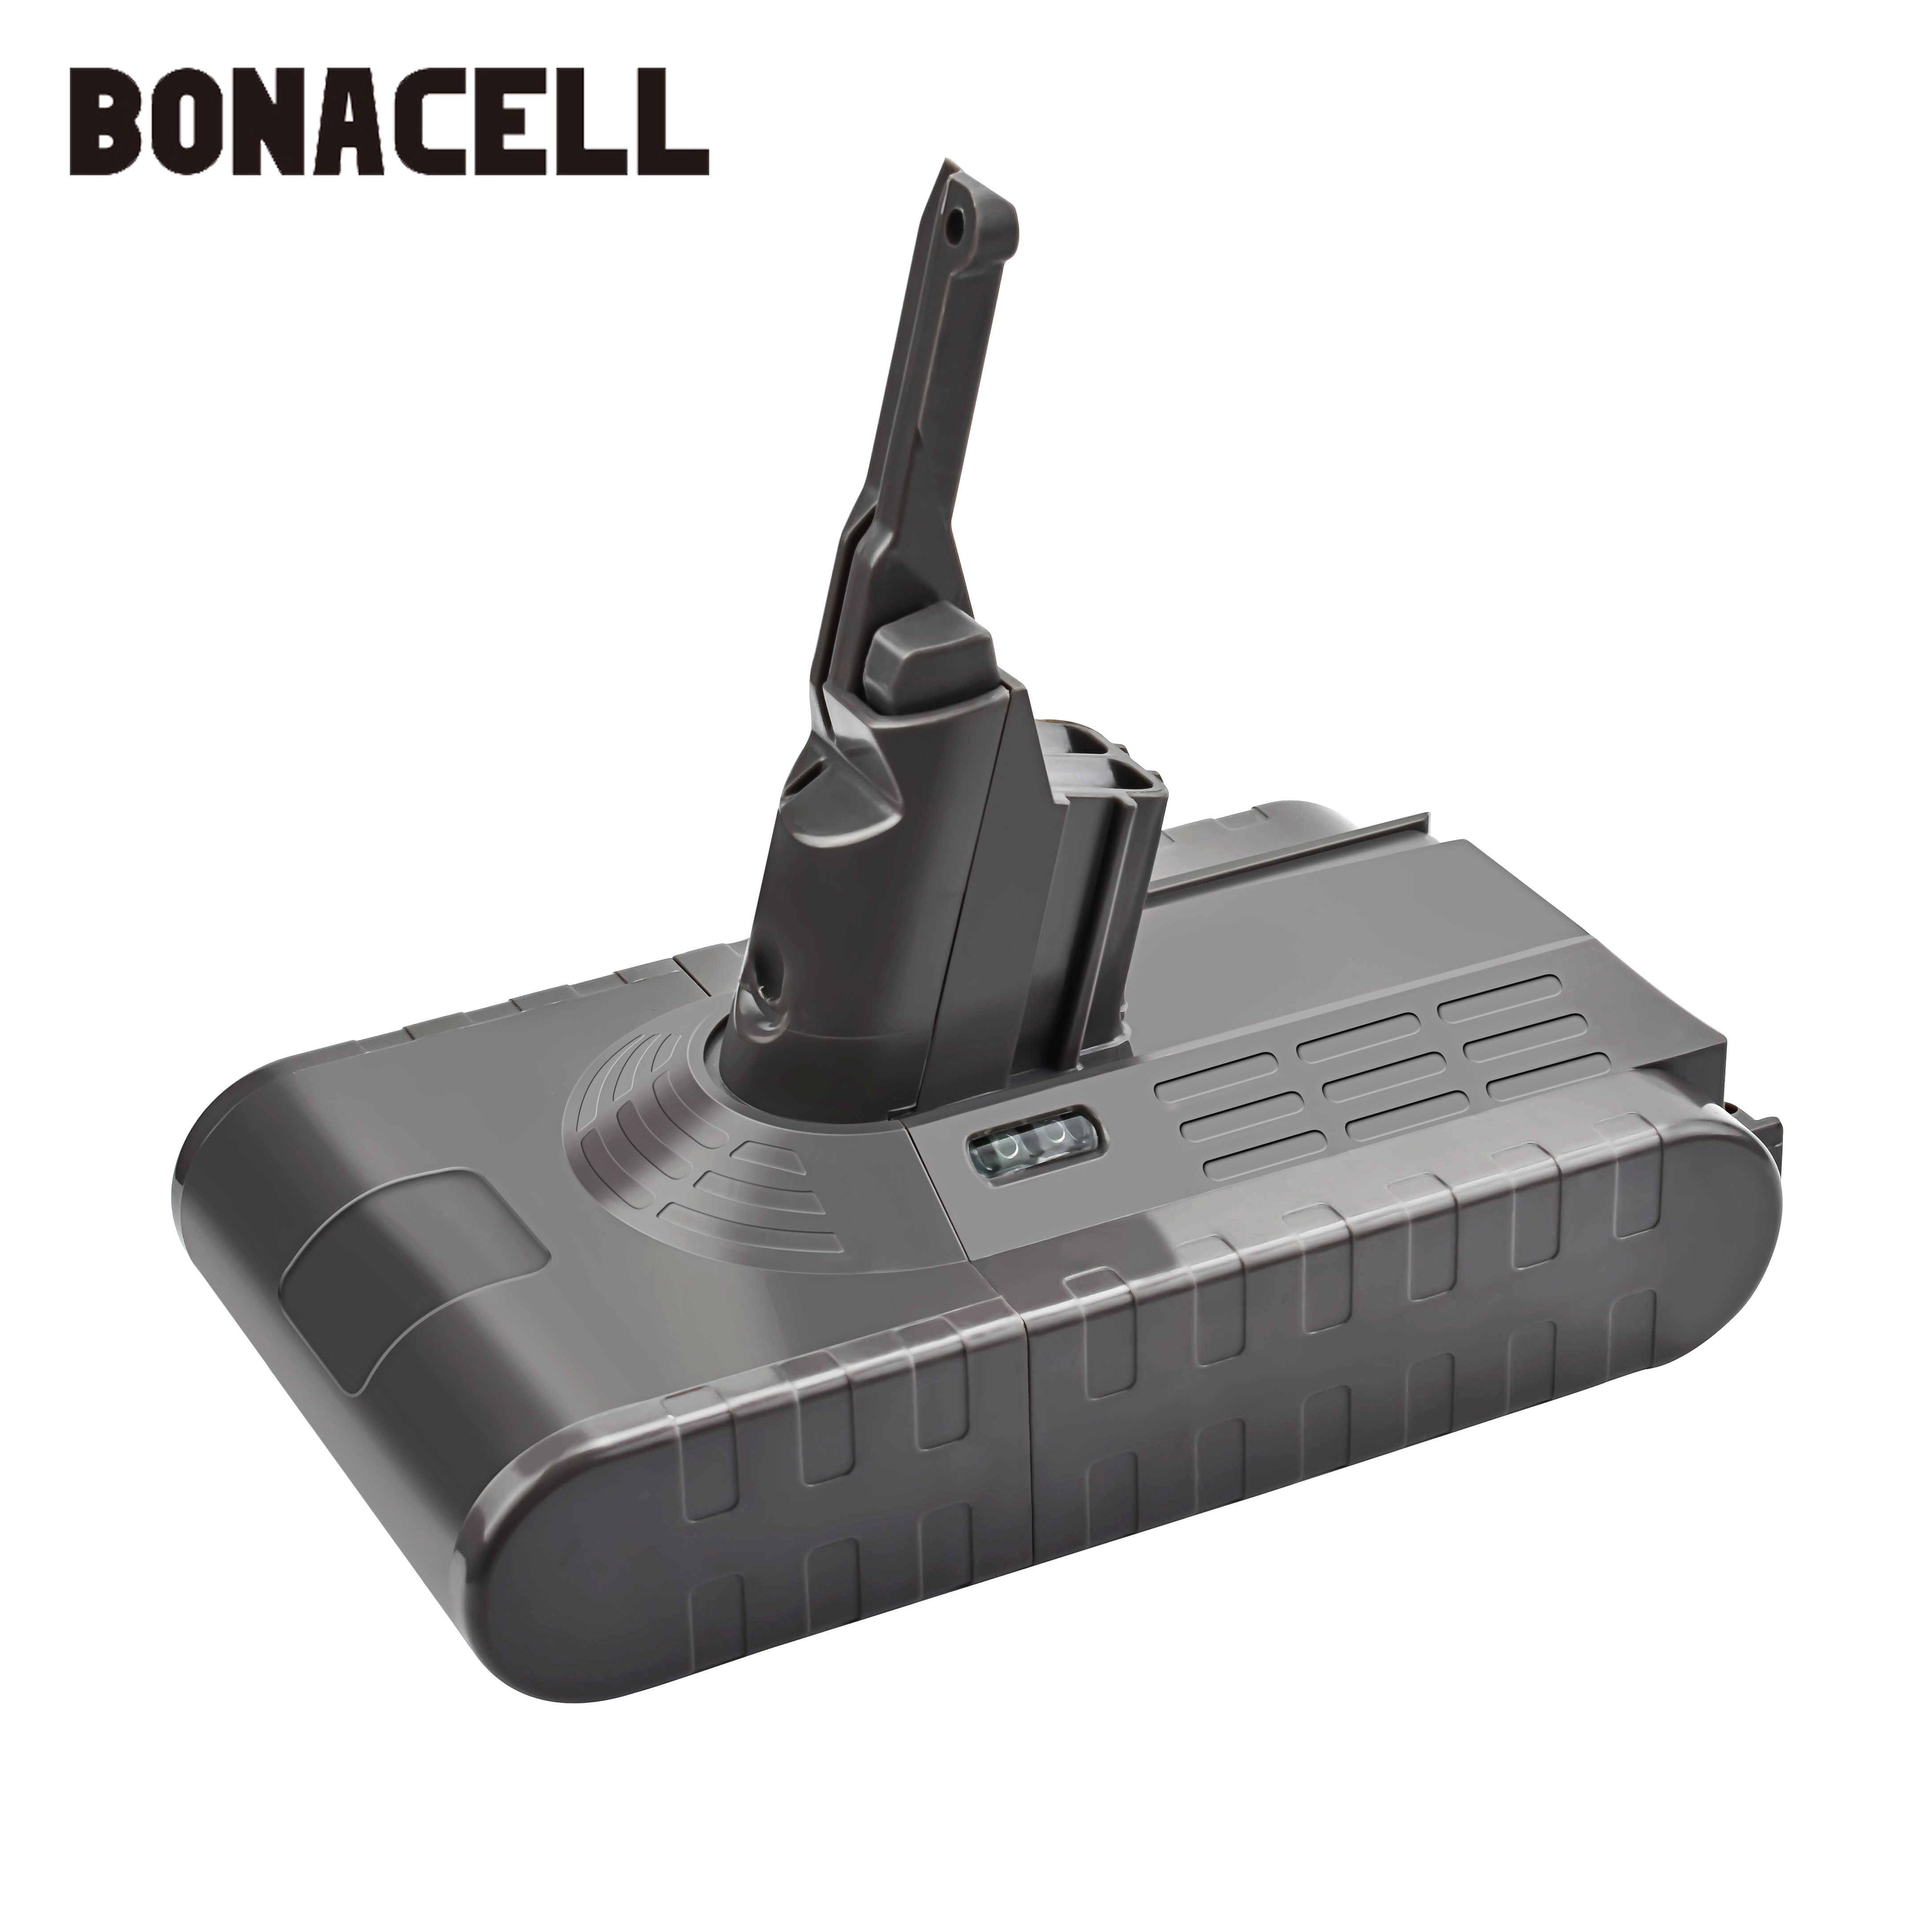 Image 2 - Bonacell V8 4000mAh 21.6V Battery For Dyson V8 Battery Absolute V8 Animal Li ion Vacuum Cleaner Rechargeable BATTERY L30-in Replacement Batteries from Consumer Electronics